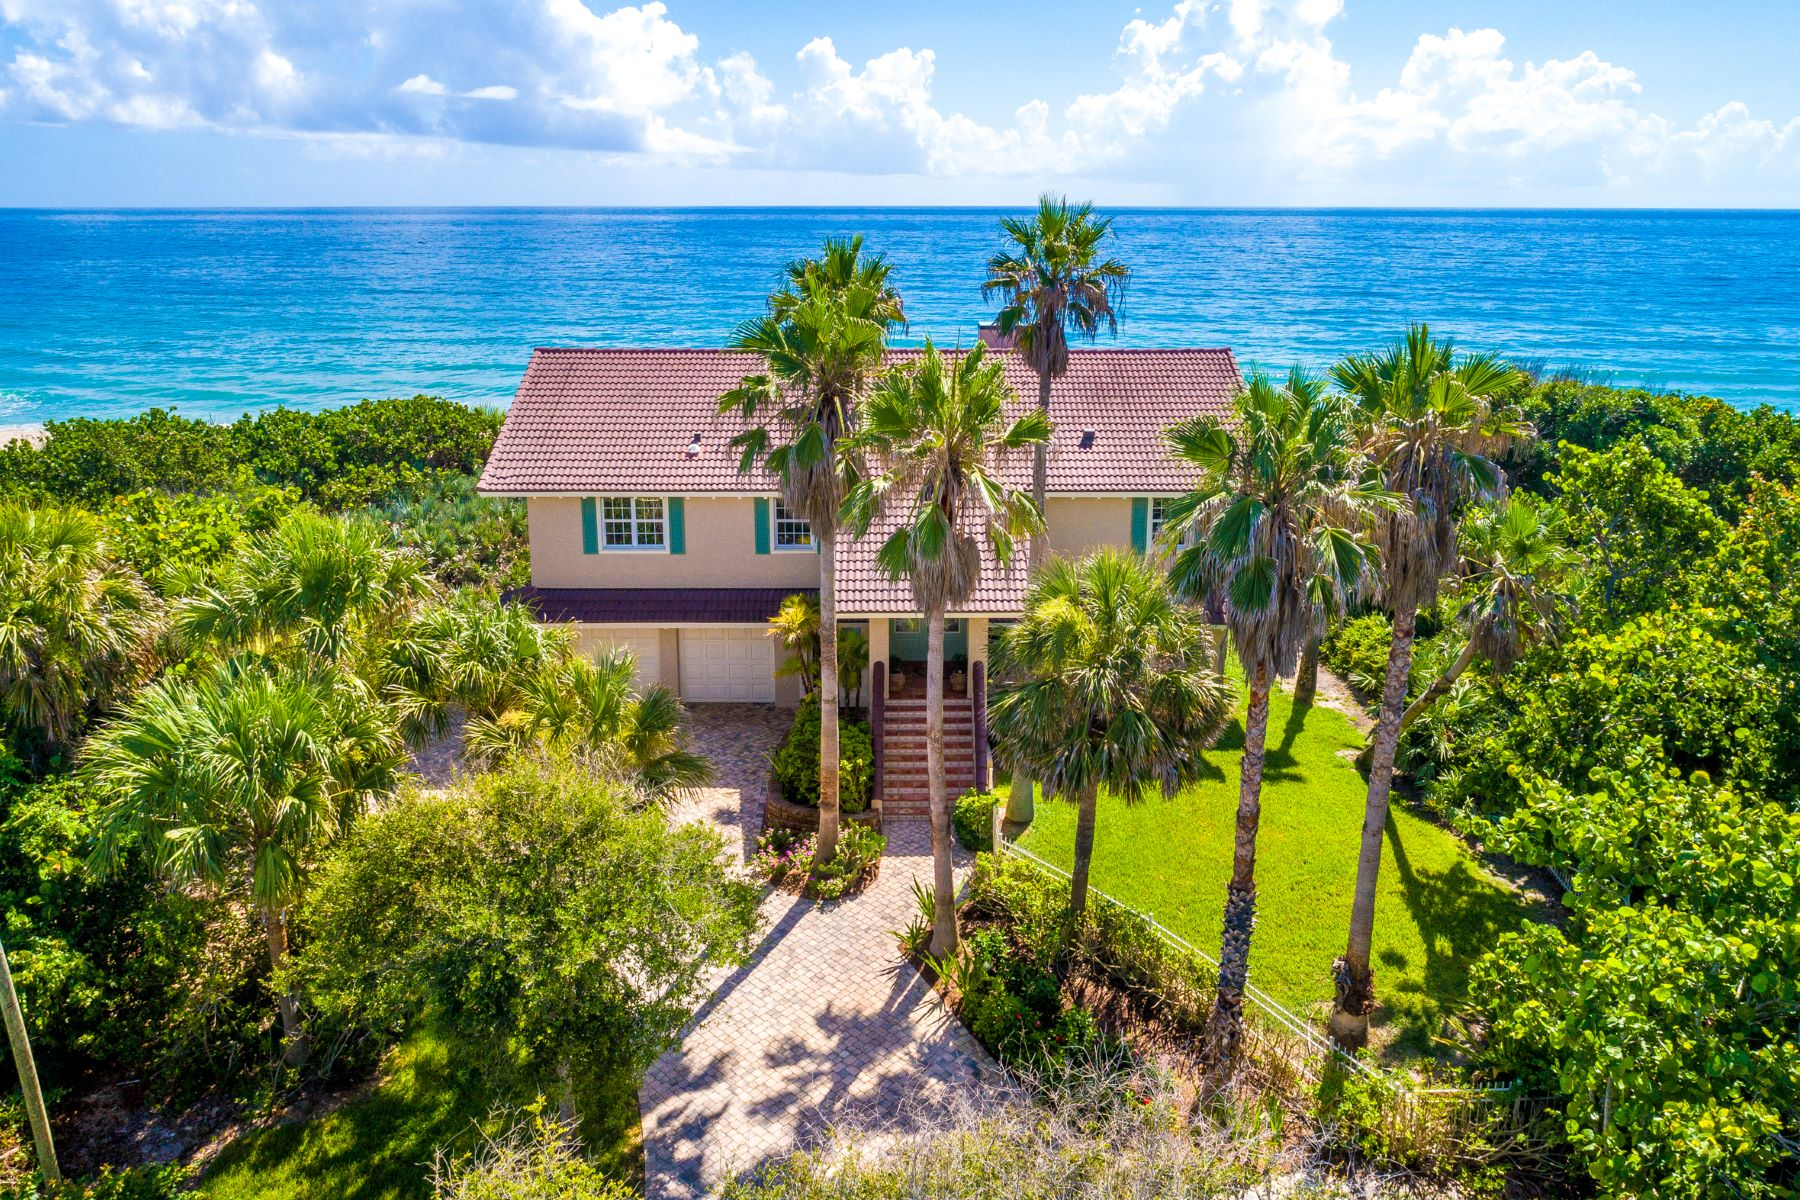 Property para Venda às Completely Renovated Oceanfront Dream Home 9515 S Highway A1A Melbourne Beach, Florida 32951 Estados Unidos